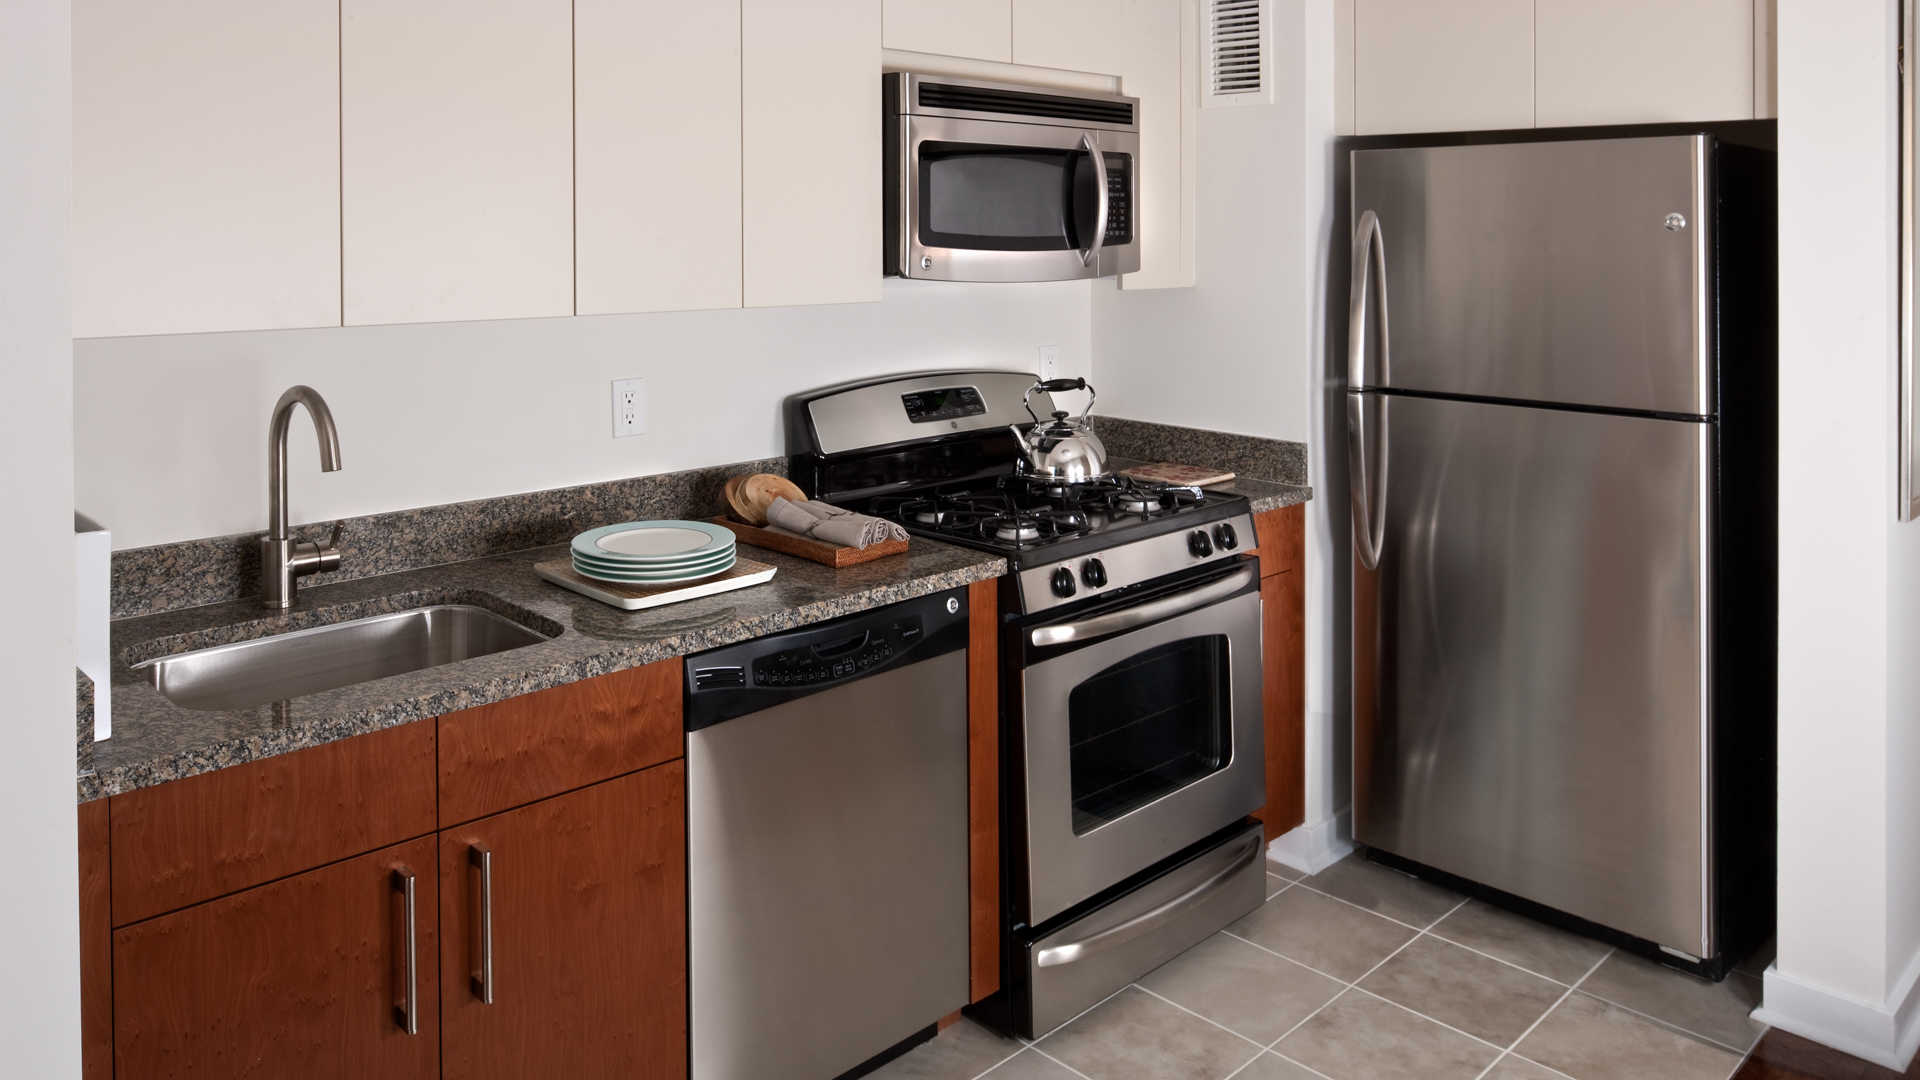 The brooklyner apartments kitchen